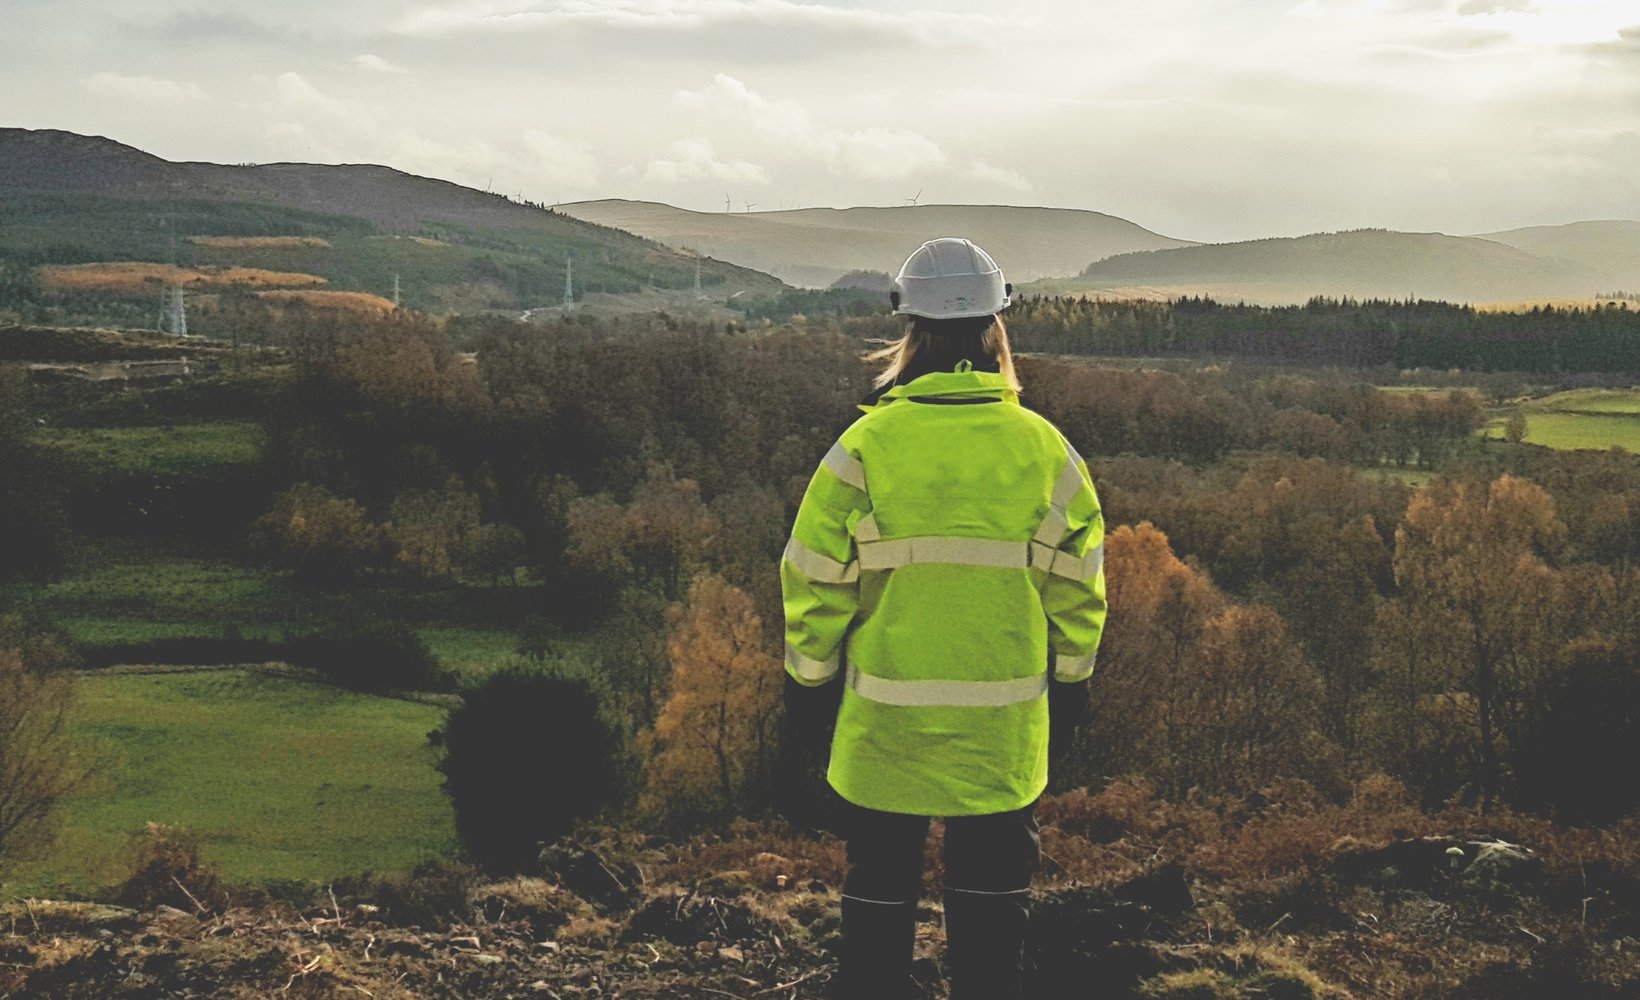 A person wearing Personal Protective Equipment stands with their back to the camera, facing an expanse of countryside that stretches to the horizon